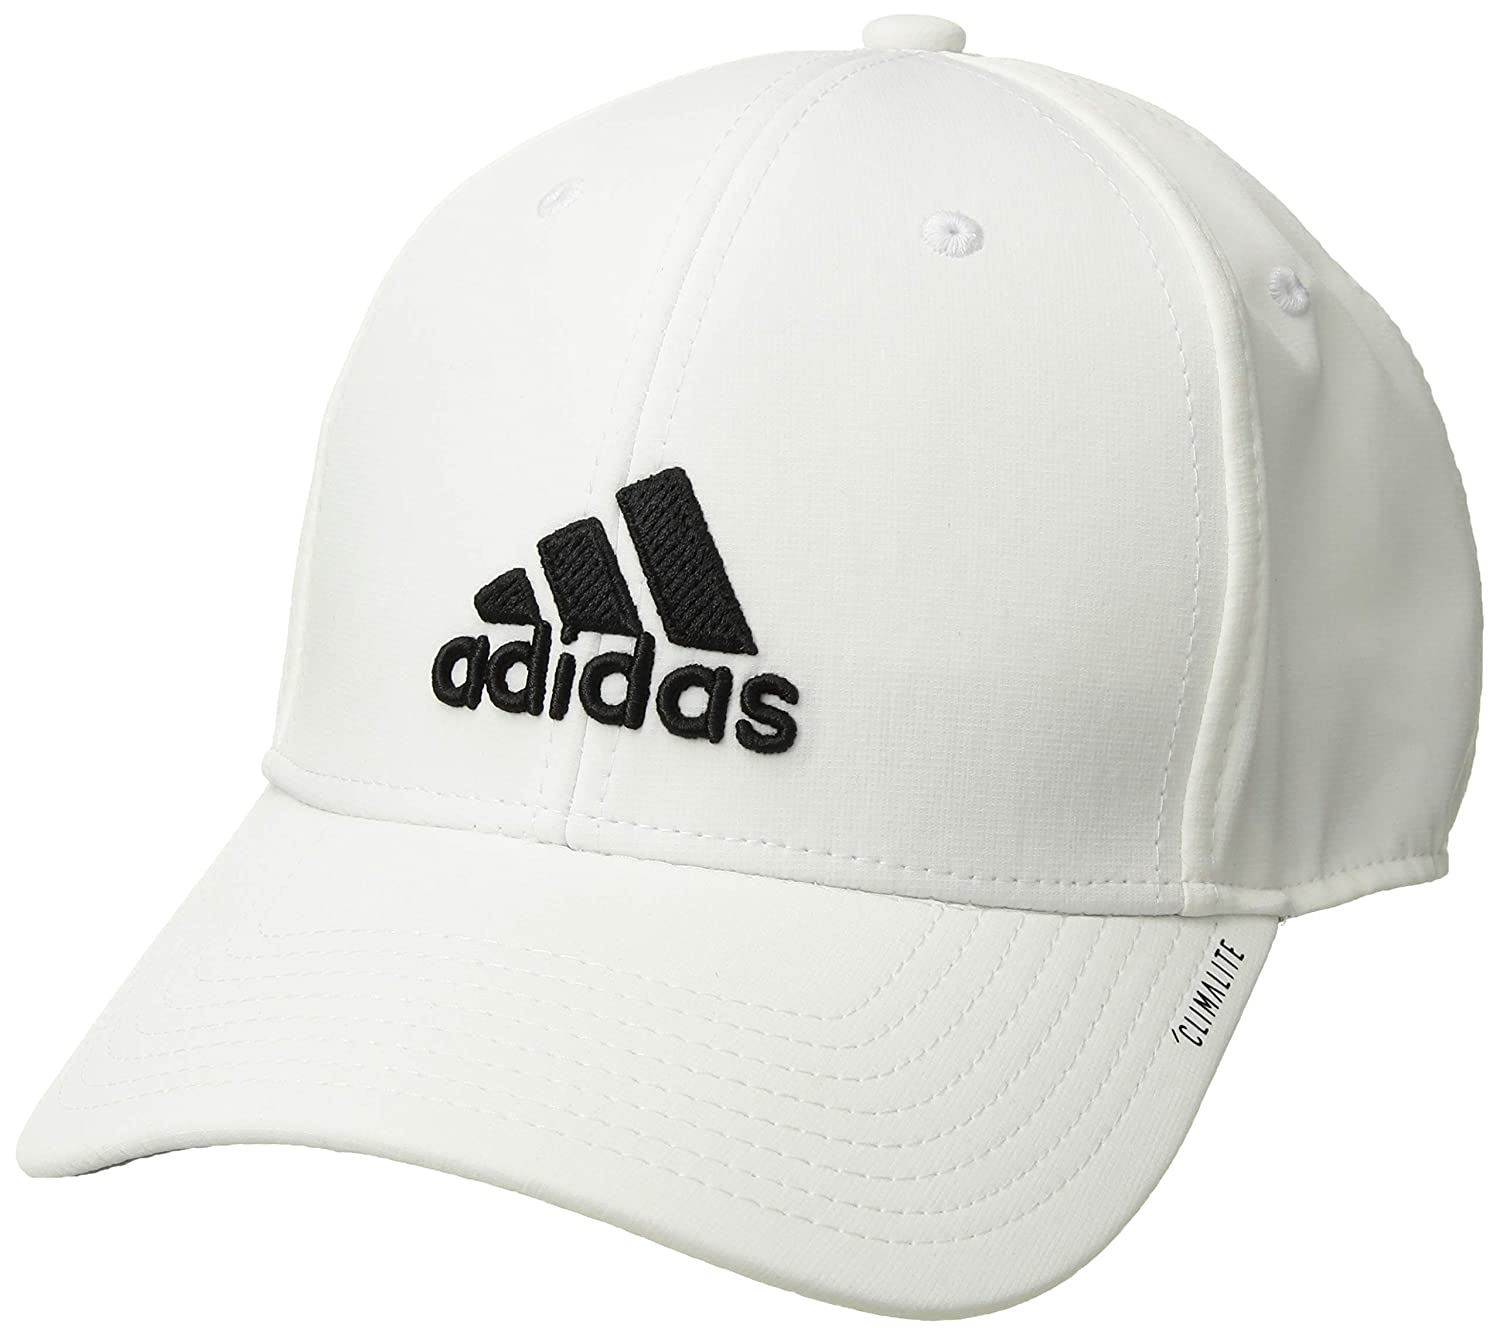 Amazon.com  adidas Men s Gameday Stretch Fit Structured Cap  Sports    Outdoors c173b1074d14